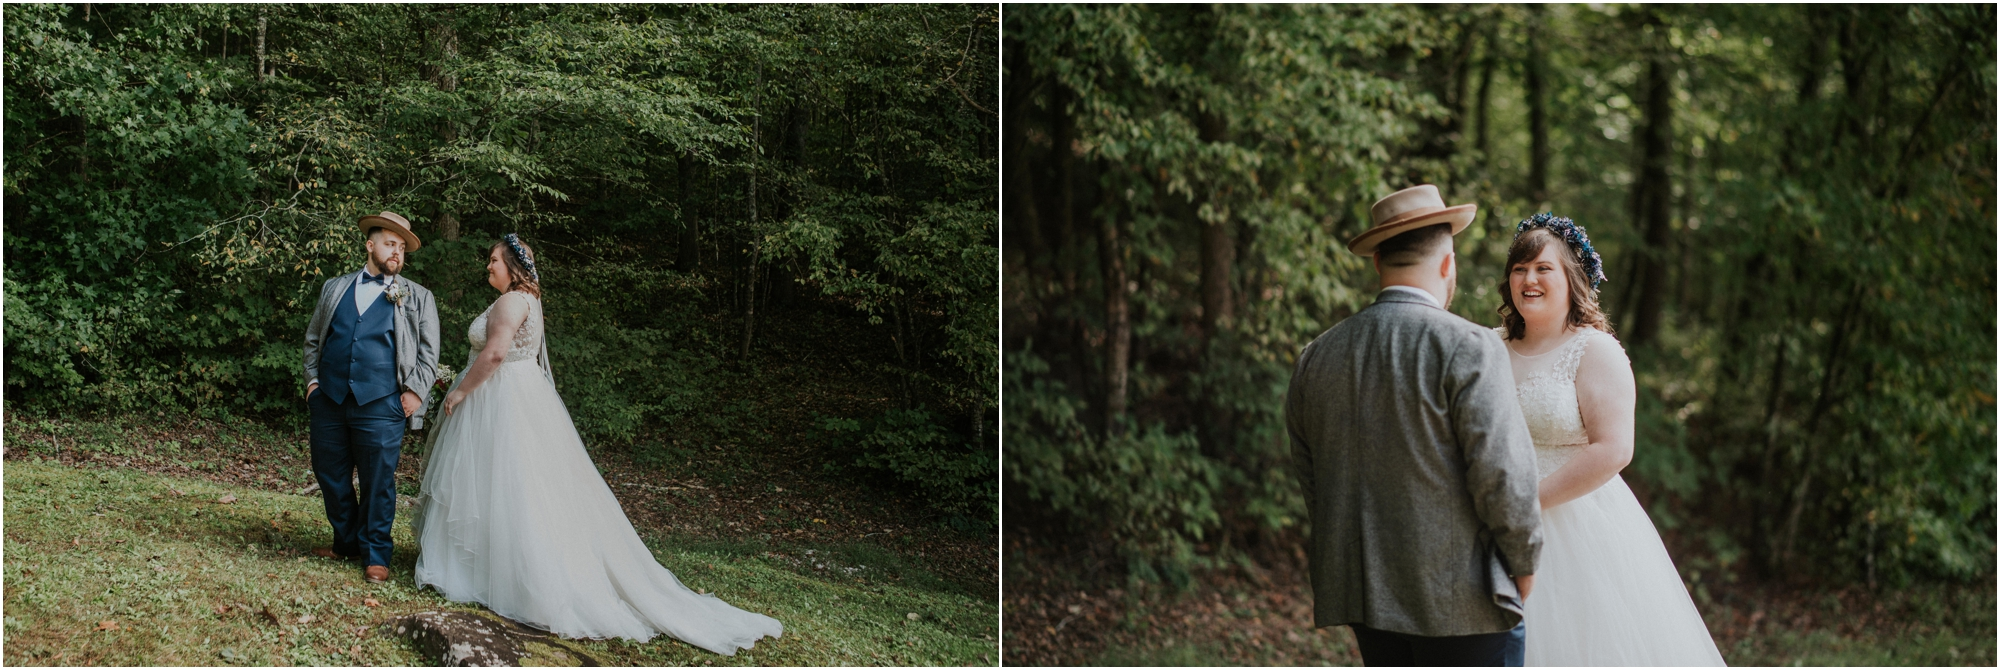 caryville-robbins-middle-tennessee-intimate-cozy-fall-navy-rustic-backyard-wedding_0039.jpg